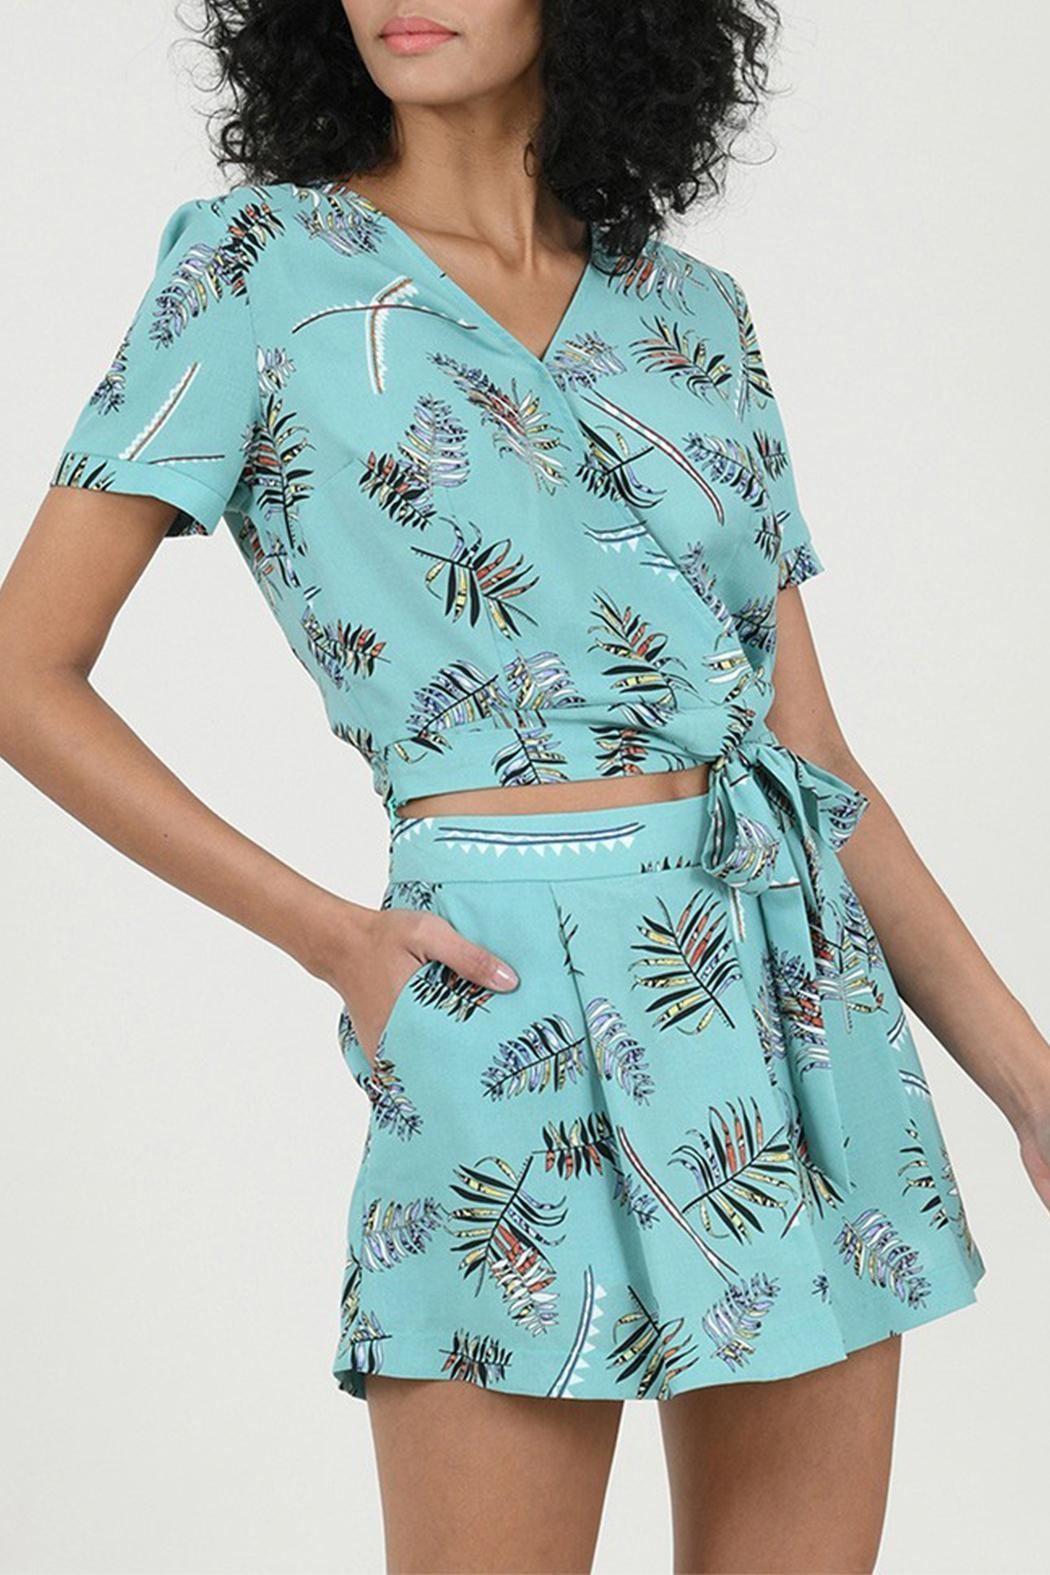 Molly Bracken Printed Top - Back Cropped Image